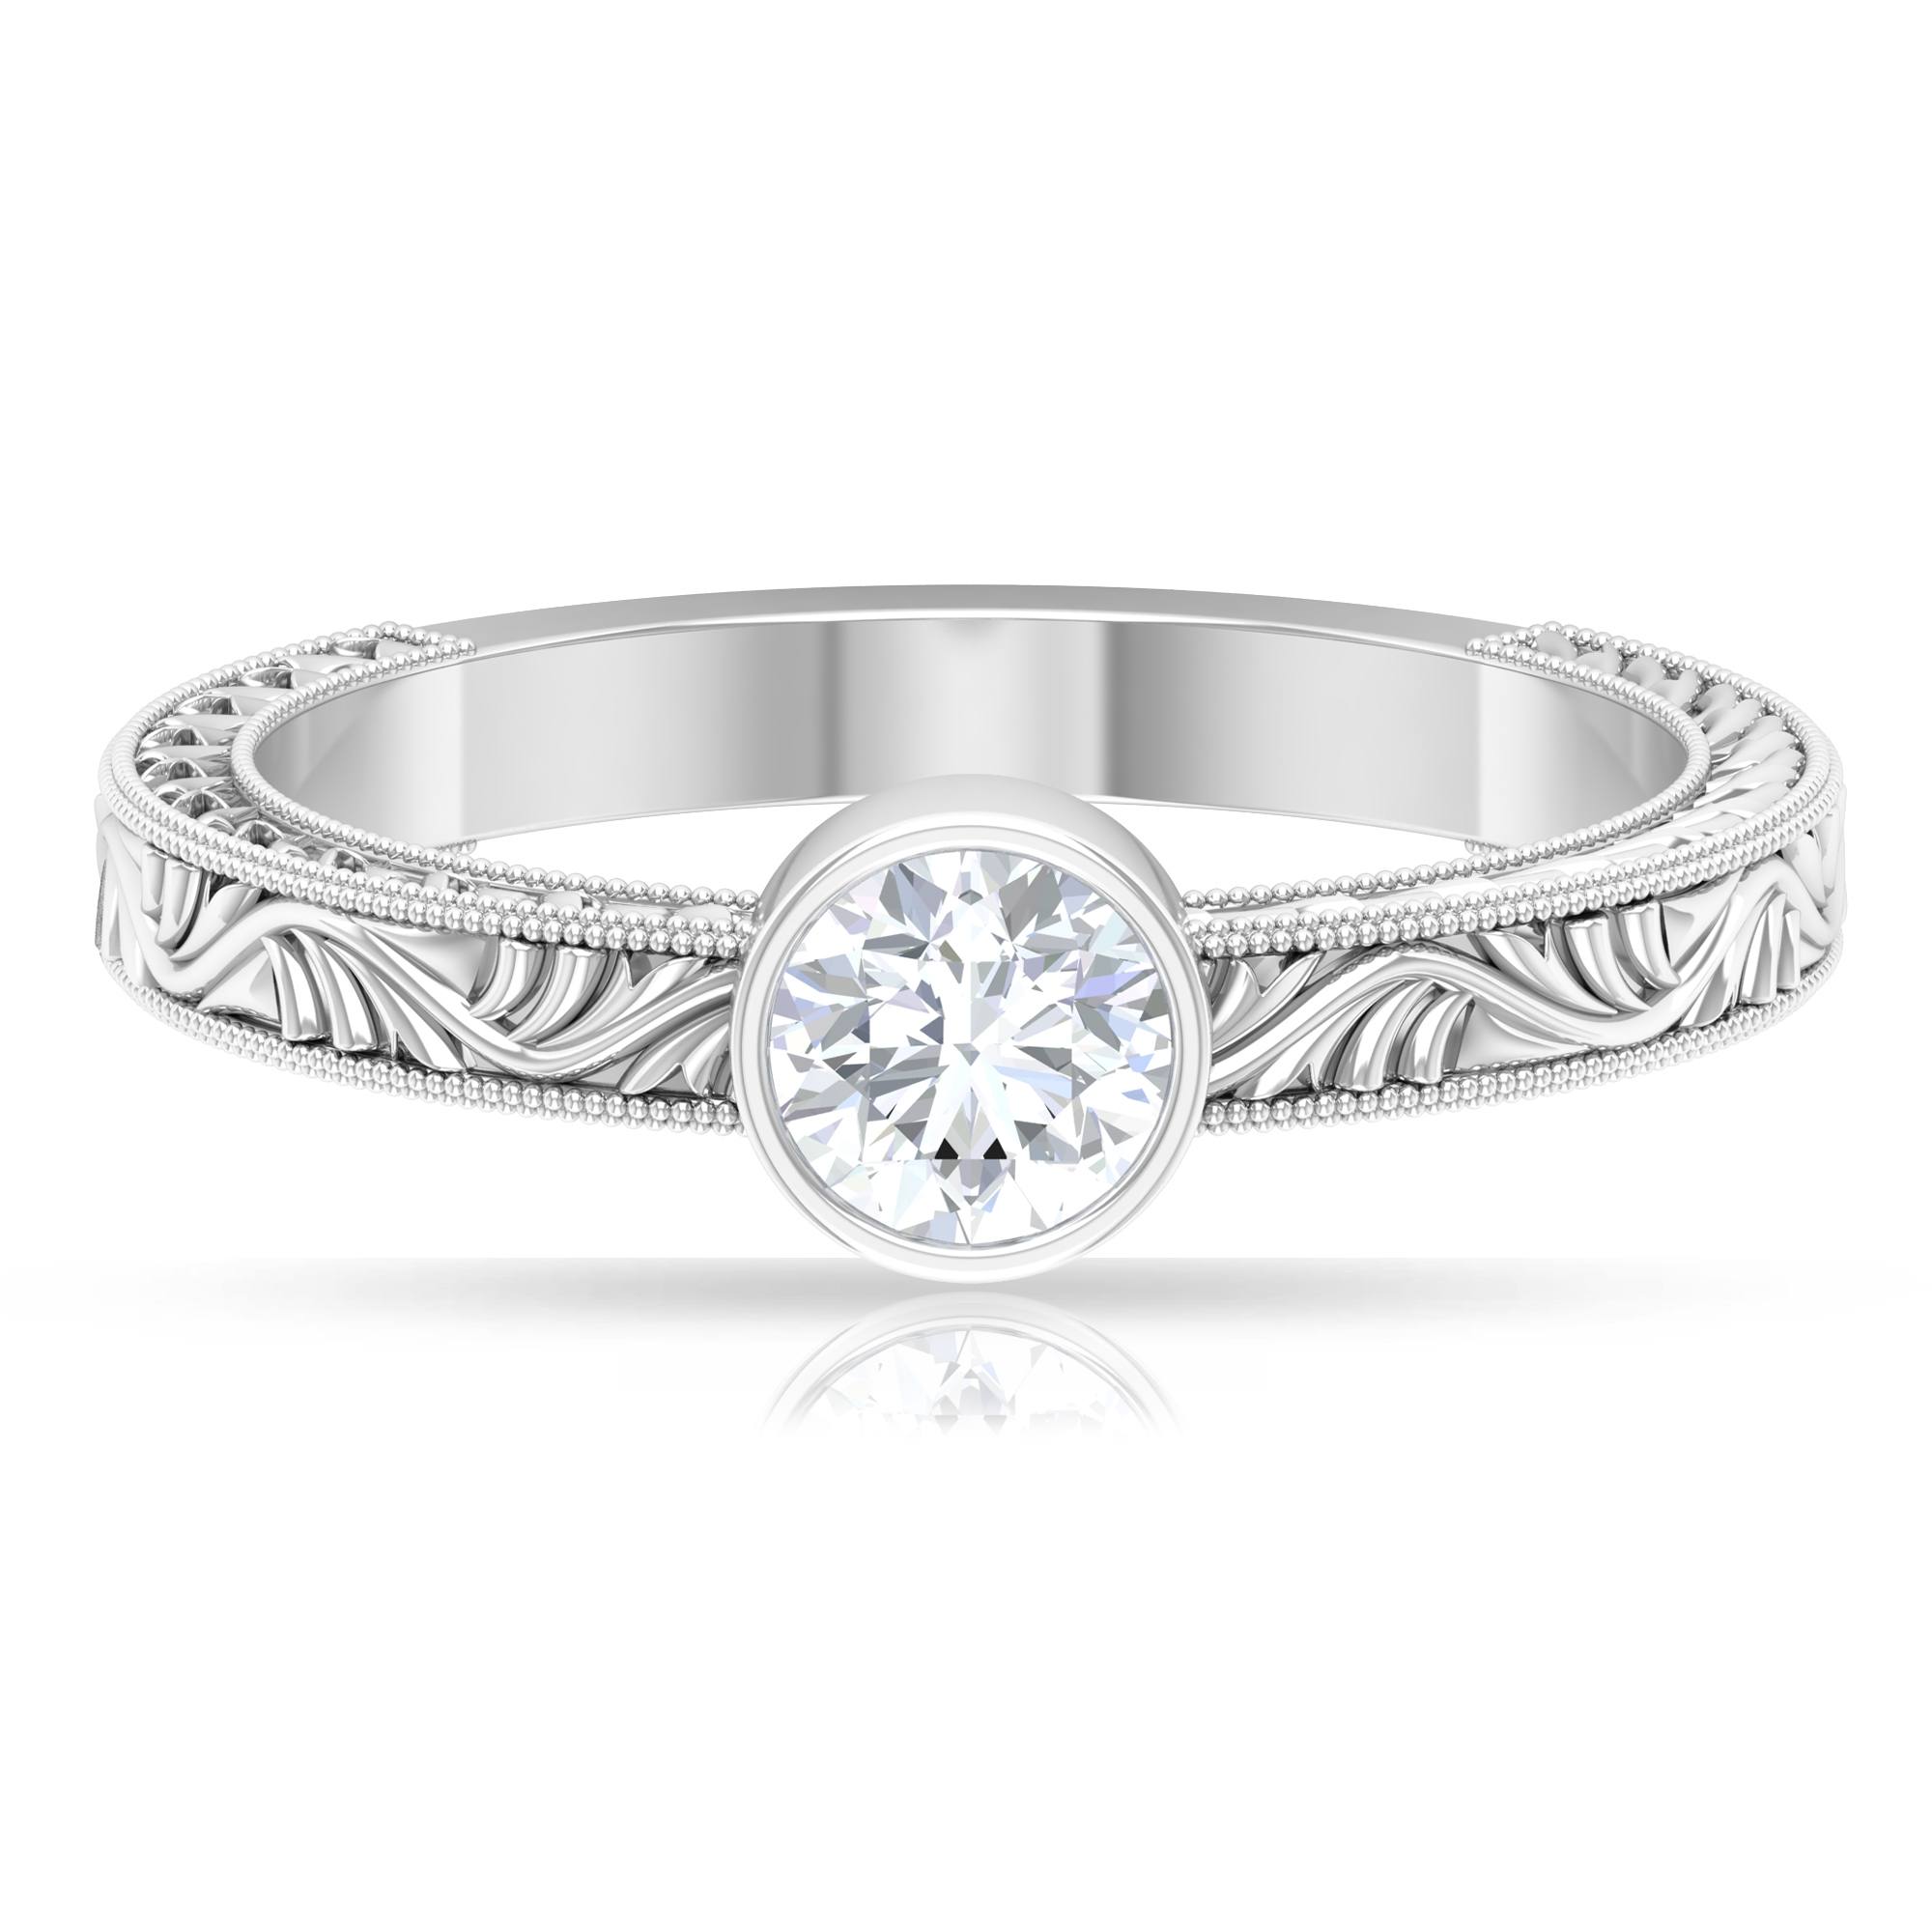 5 MM Round Cut Diamond Solitaire Ring in Bezel Setting with Engraved Details